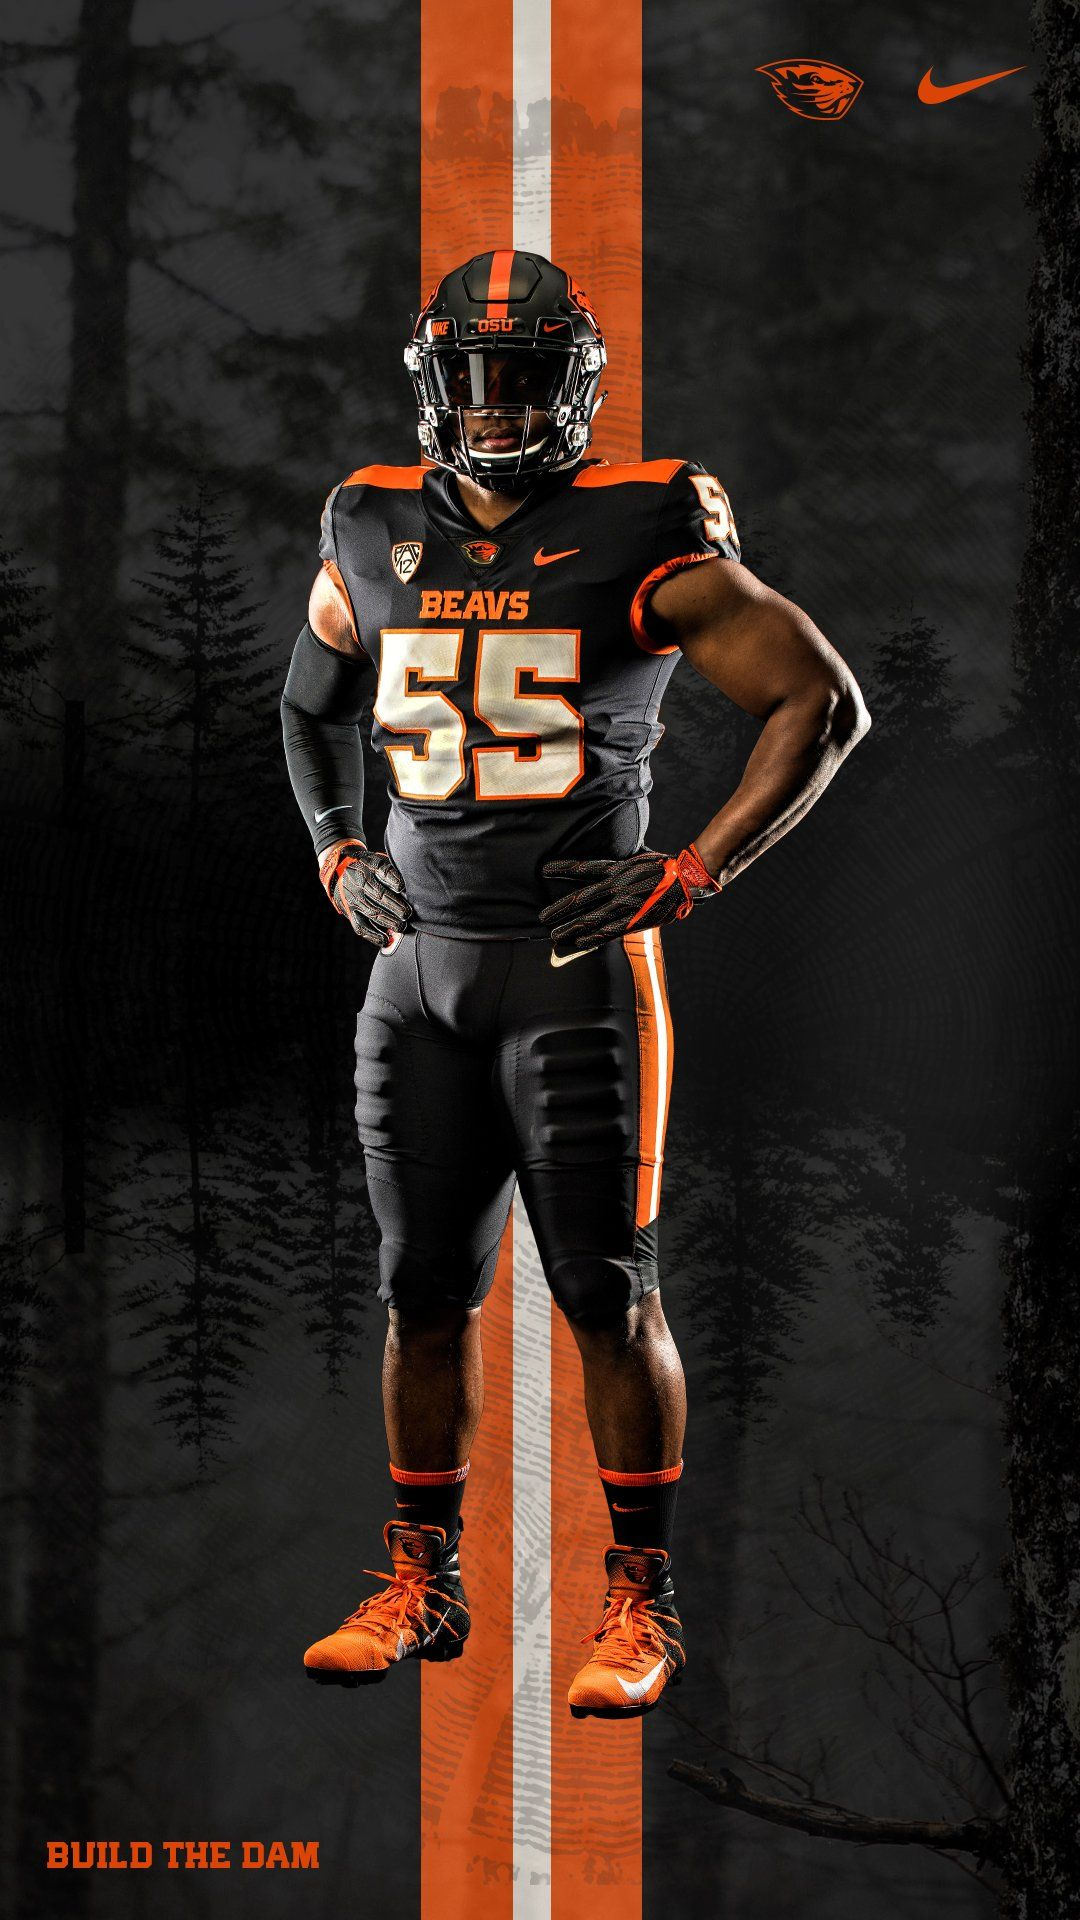 2019 Oregon State University Beavers Football Uniforms Black On Black Football Outfits Football Poses Oregon Ducks